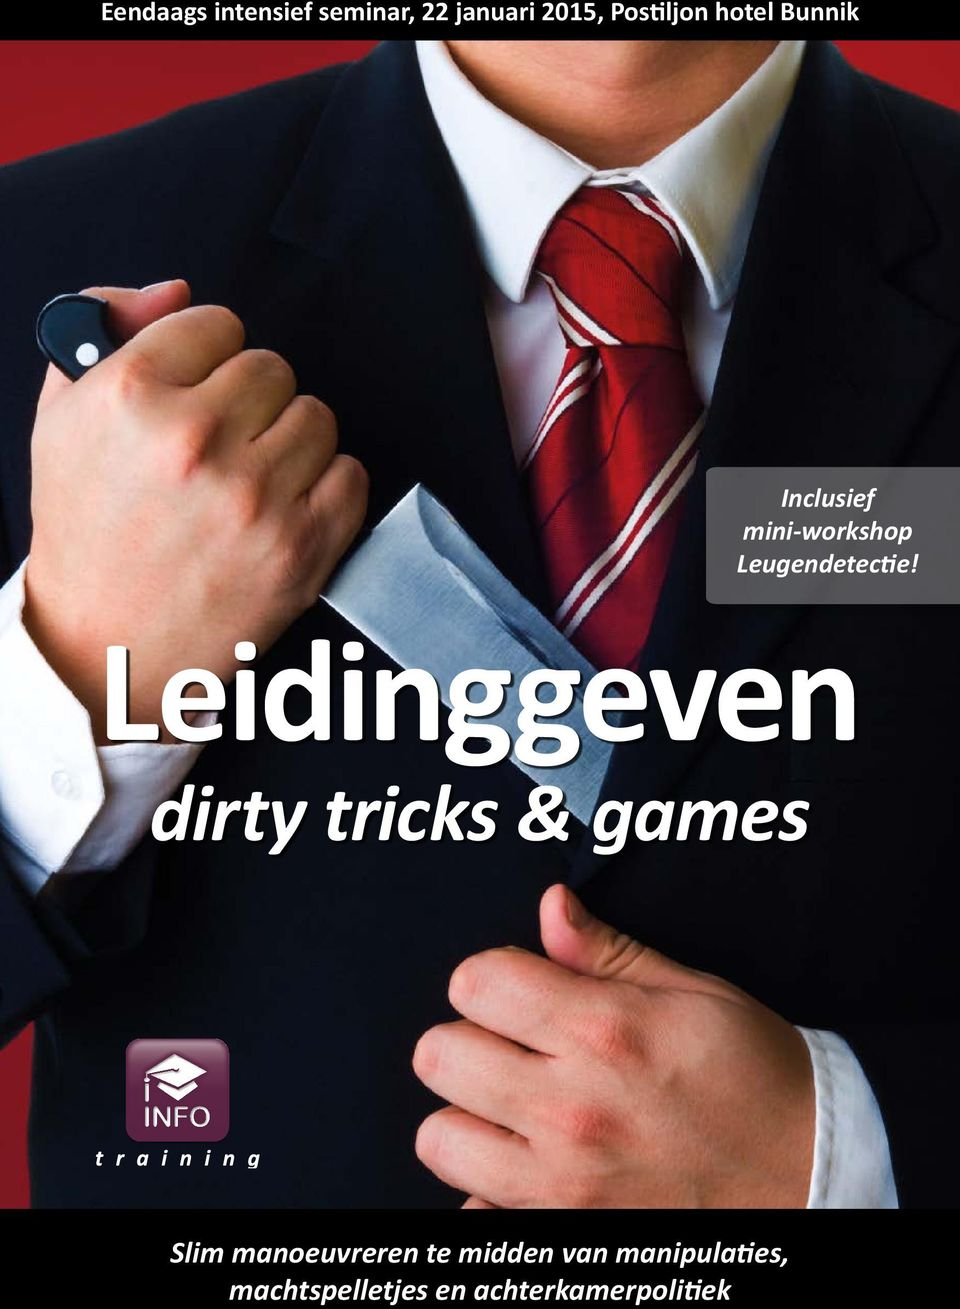 Leidinggeven dirty tricks & games Slim manoeuvreren te